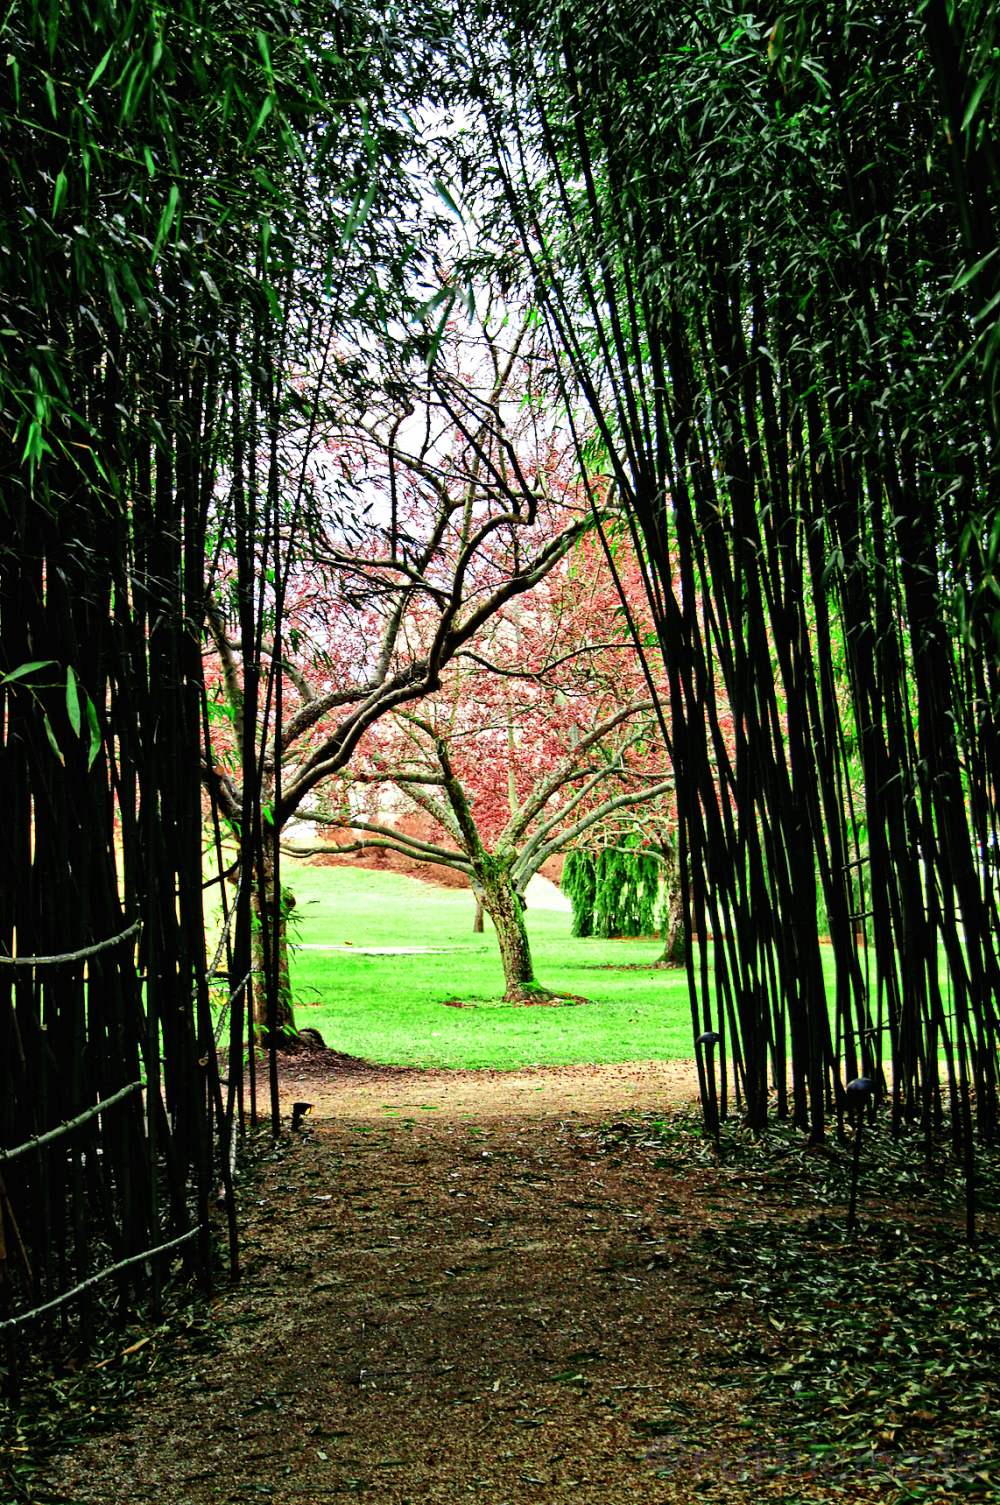 View through the Bamboo